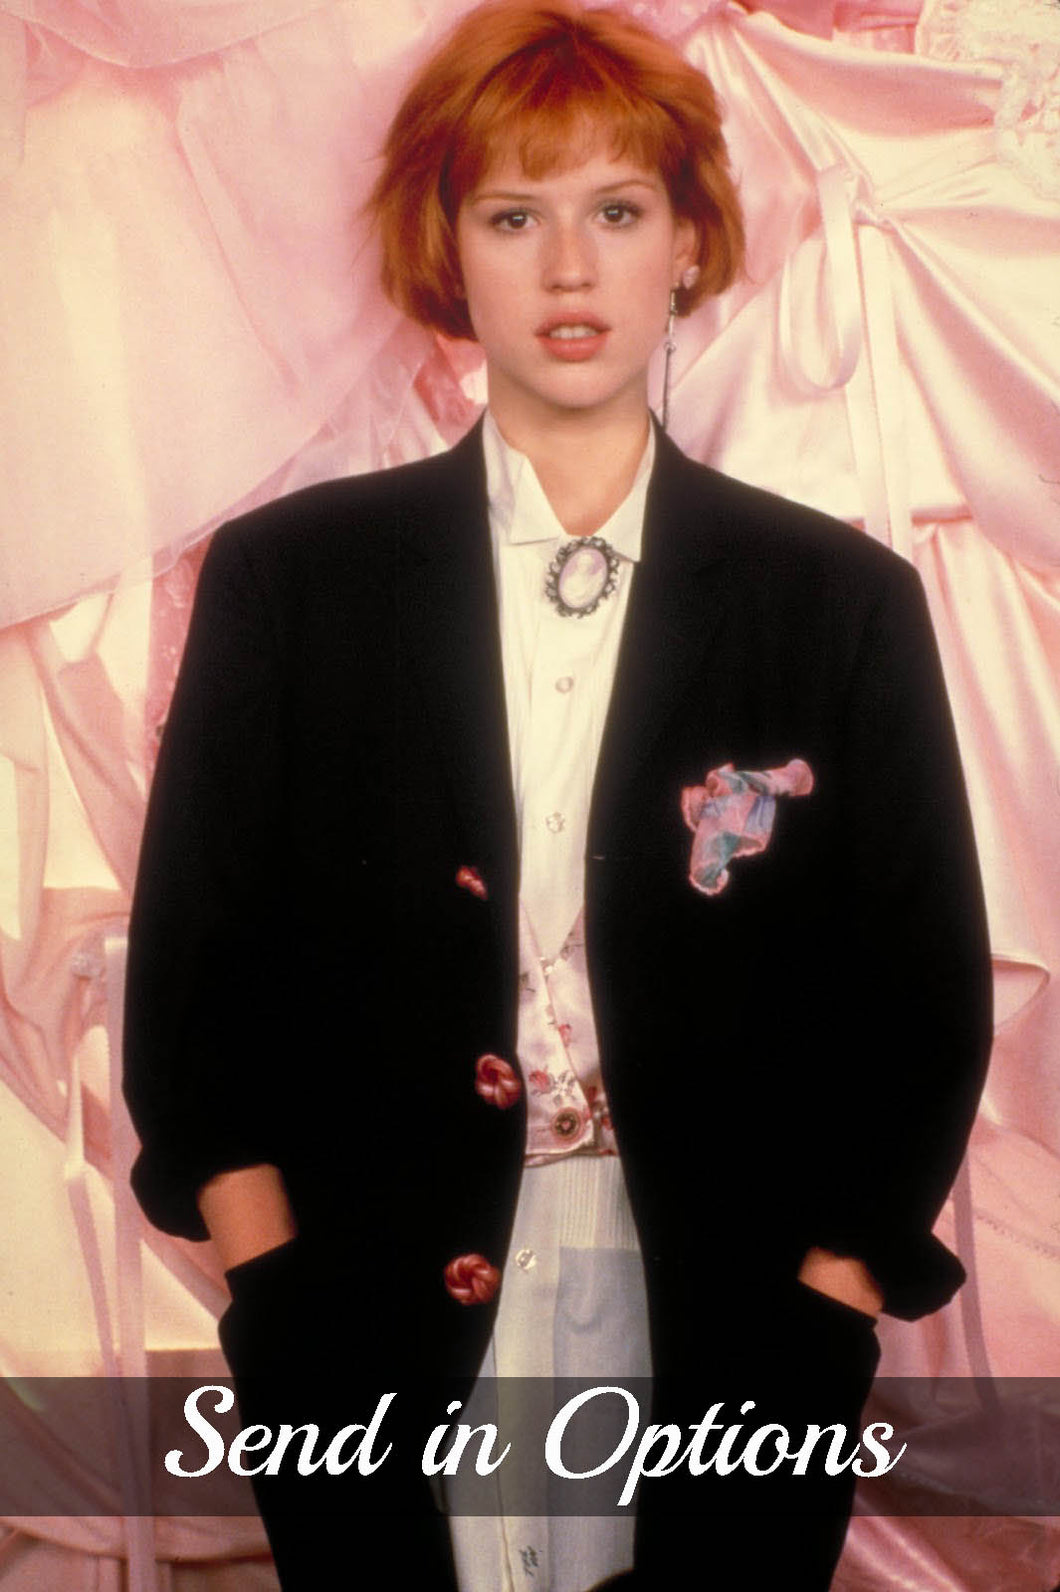 Molly Ringwald - Send In Options